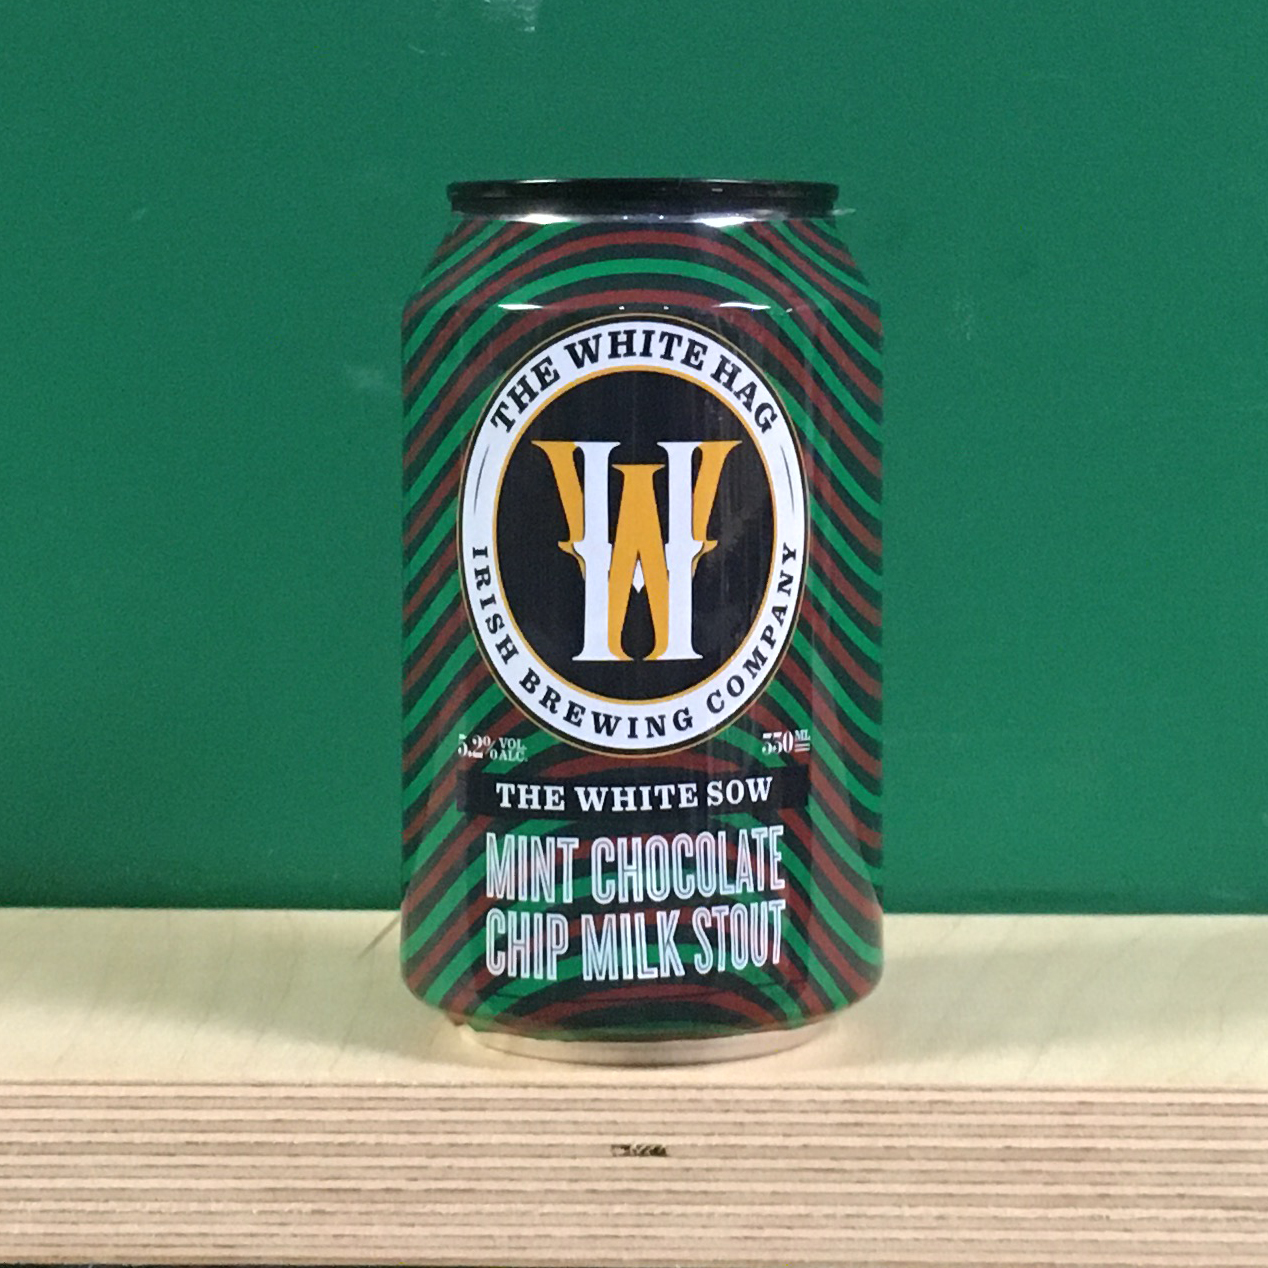 The White Hag White Sow Mint Chocolate Chip Milk Stout